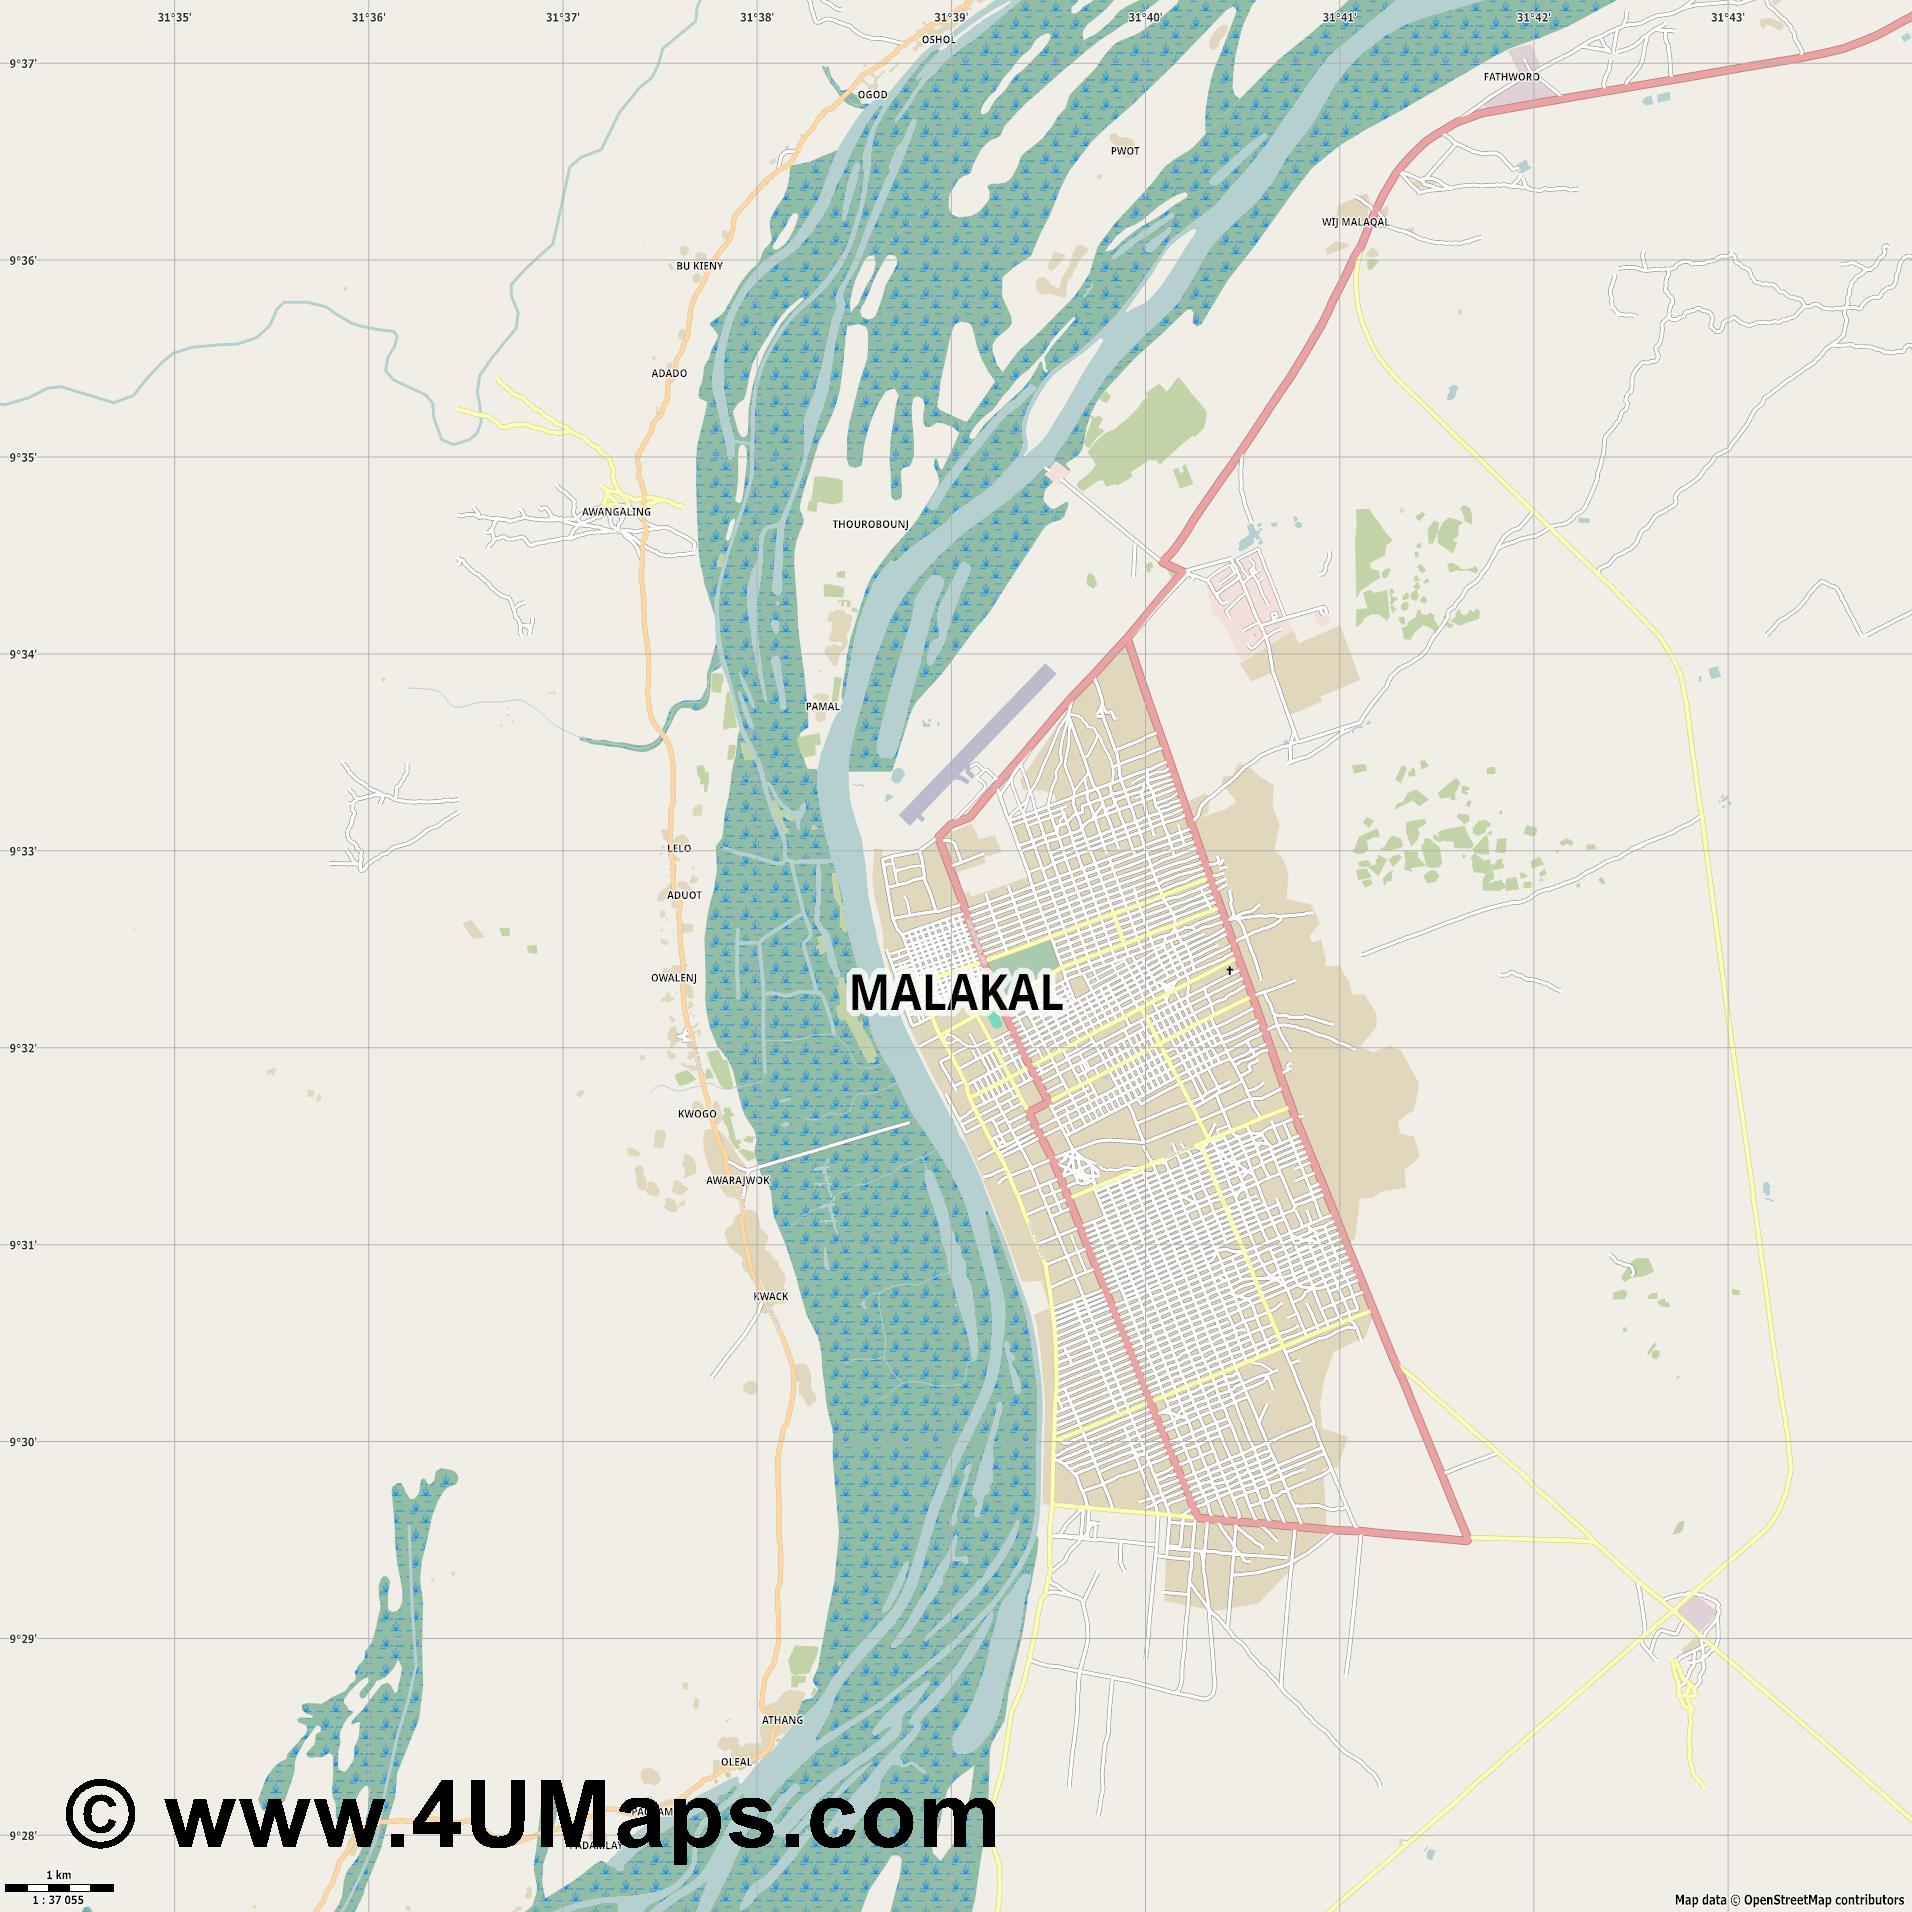 Malakal ملكال  jpg high detail, large area preview vector city map